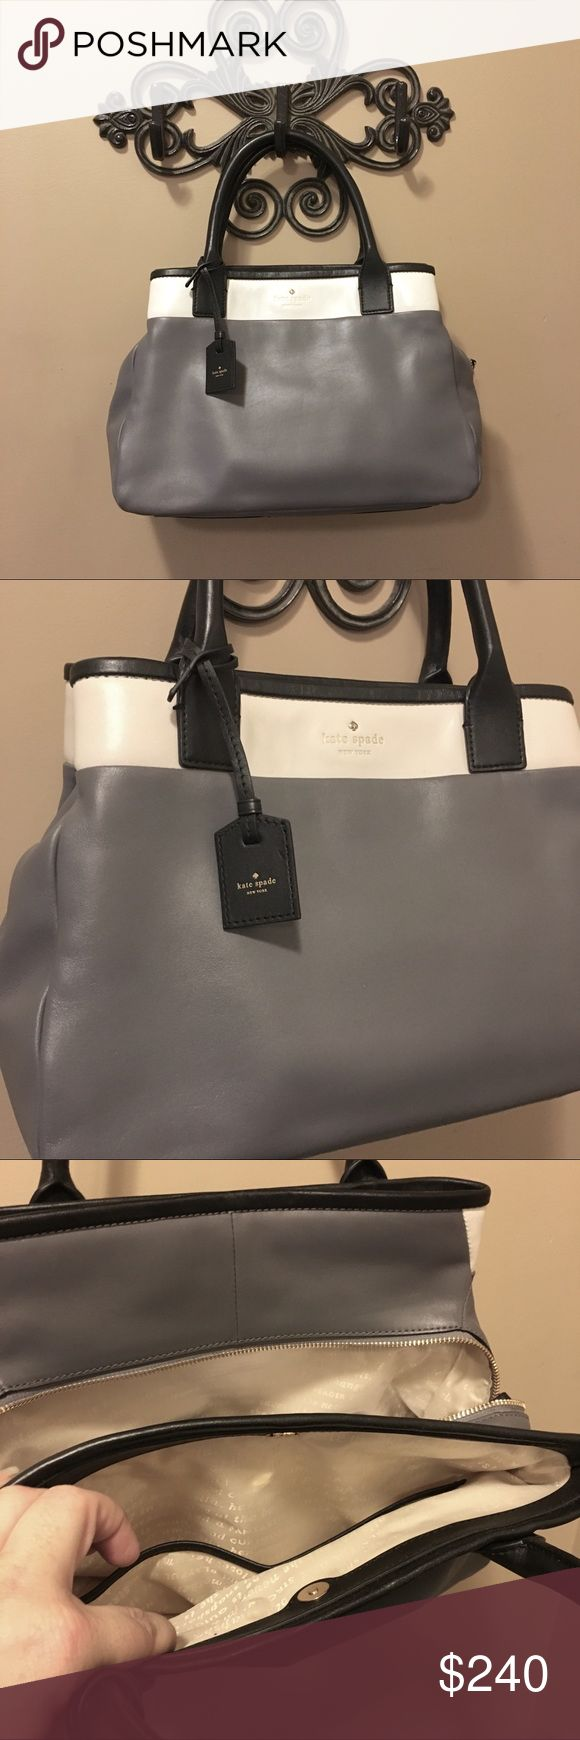 Kate Spade Branton Square mills colorblock satchel Kate Spade branton square mills color block satchel shoulder bag Excellent condition. Two corners have very small scuffs. Spot free interior.  A timeless, lightly-structured satchel shaped from rich leather gets a modern makeover with refined color blocking and a trio of interior compartments for easy organization. Rolled handles.  Magnetic-snap & top-zip closures. Exterior slip pocket. Interior zip, wall and cell-phone pockets. Signature…